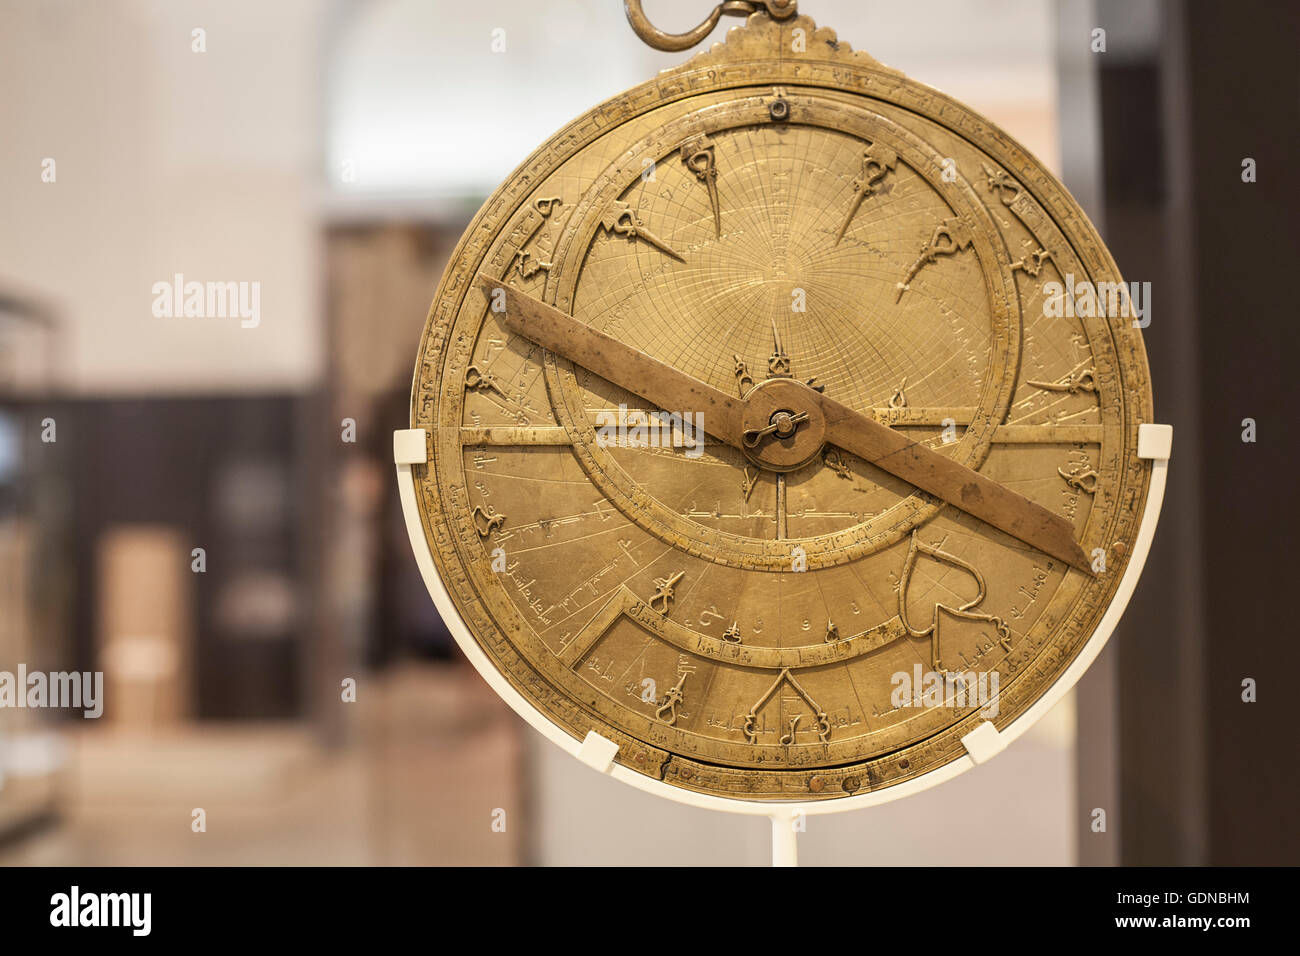 Antique brass astrolabe made during Arabic Middle Age rule in Spain ...